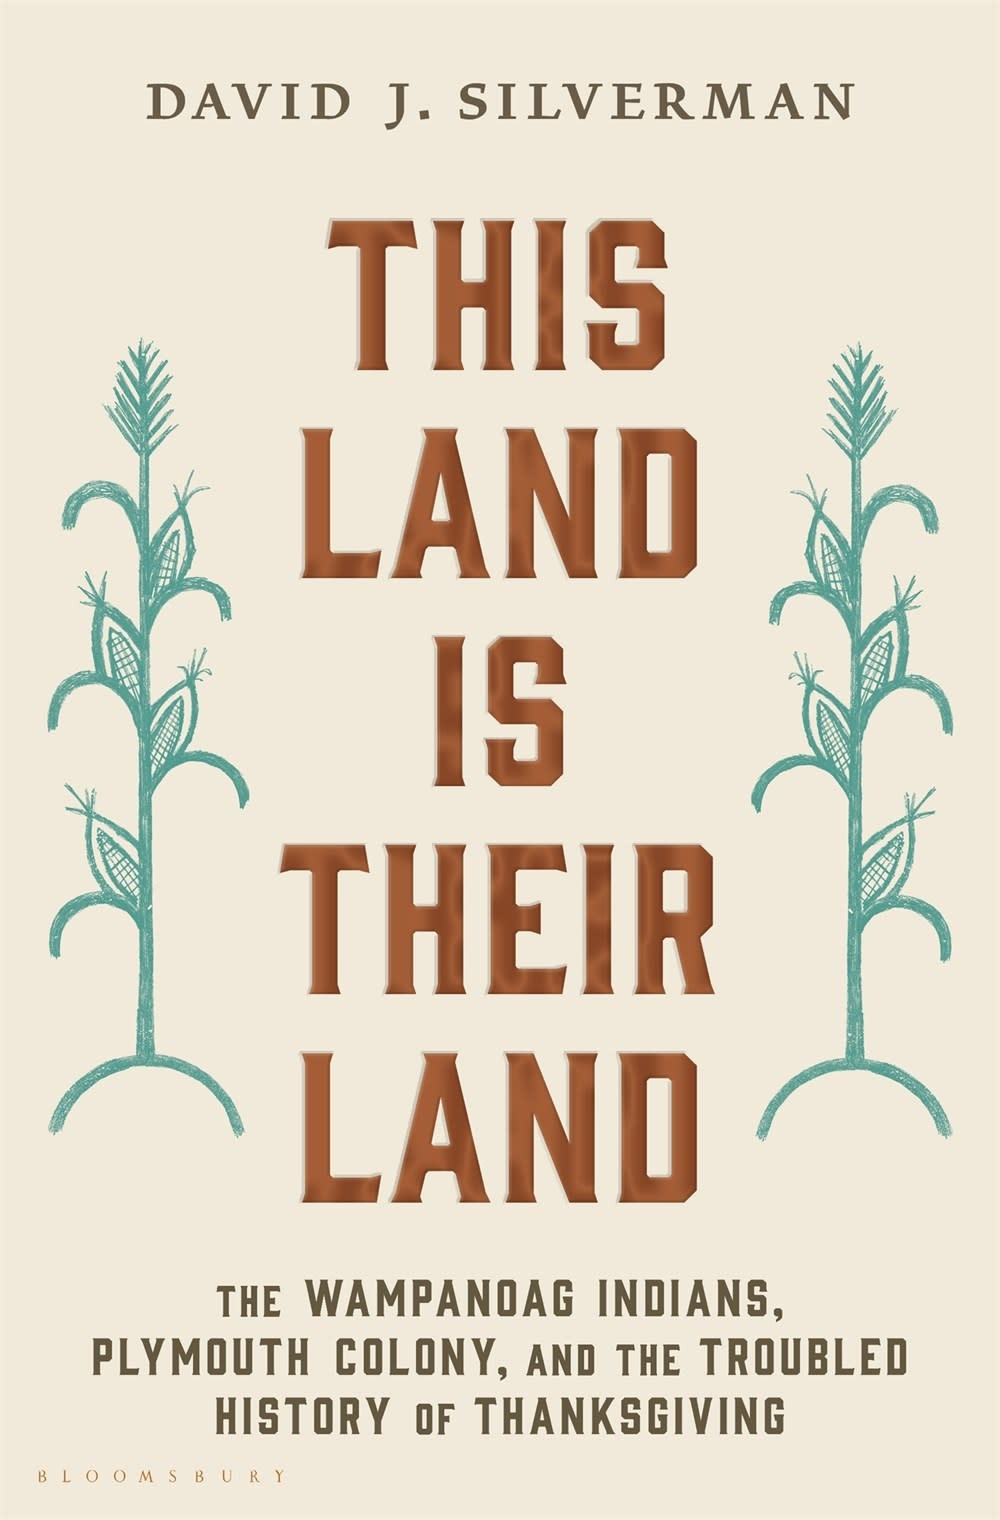 Bloomsbury Publishing This Land Is Their Land: ...the Troubled History of Thanksgiving